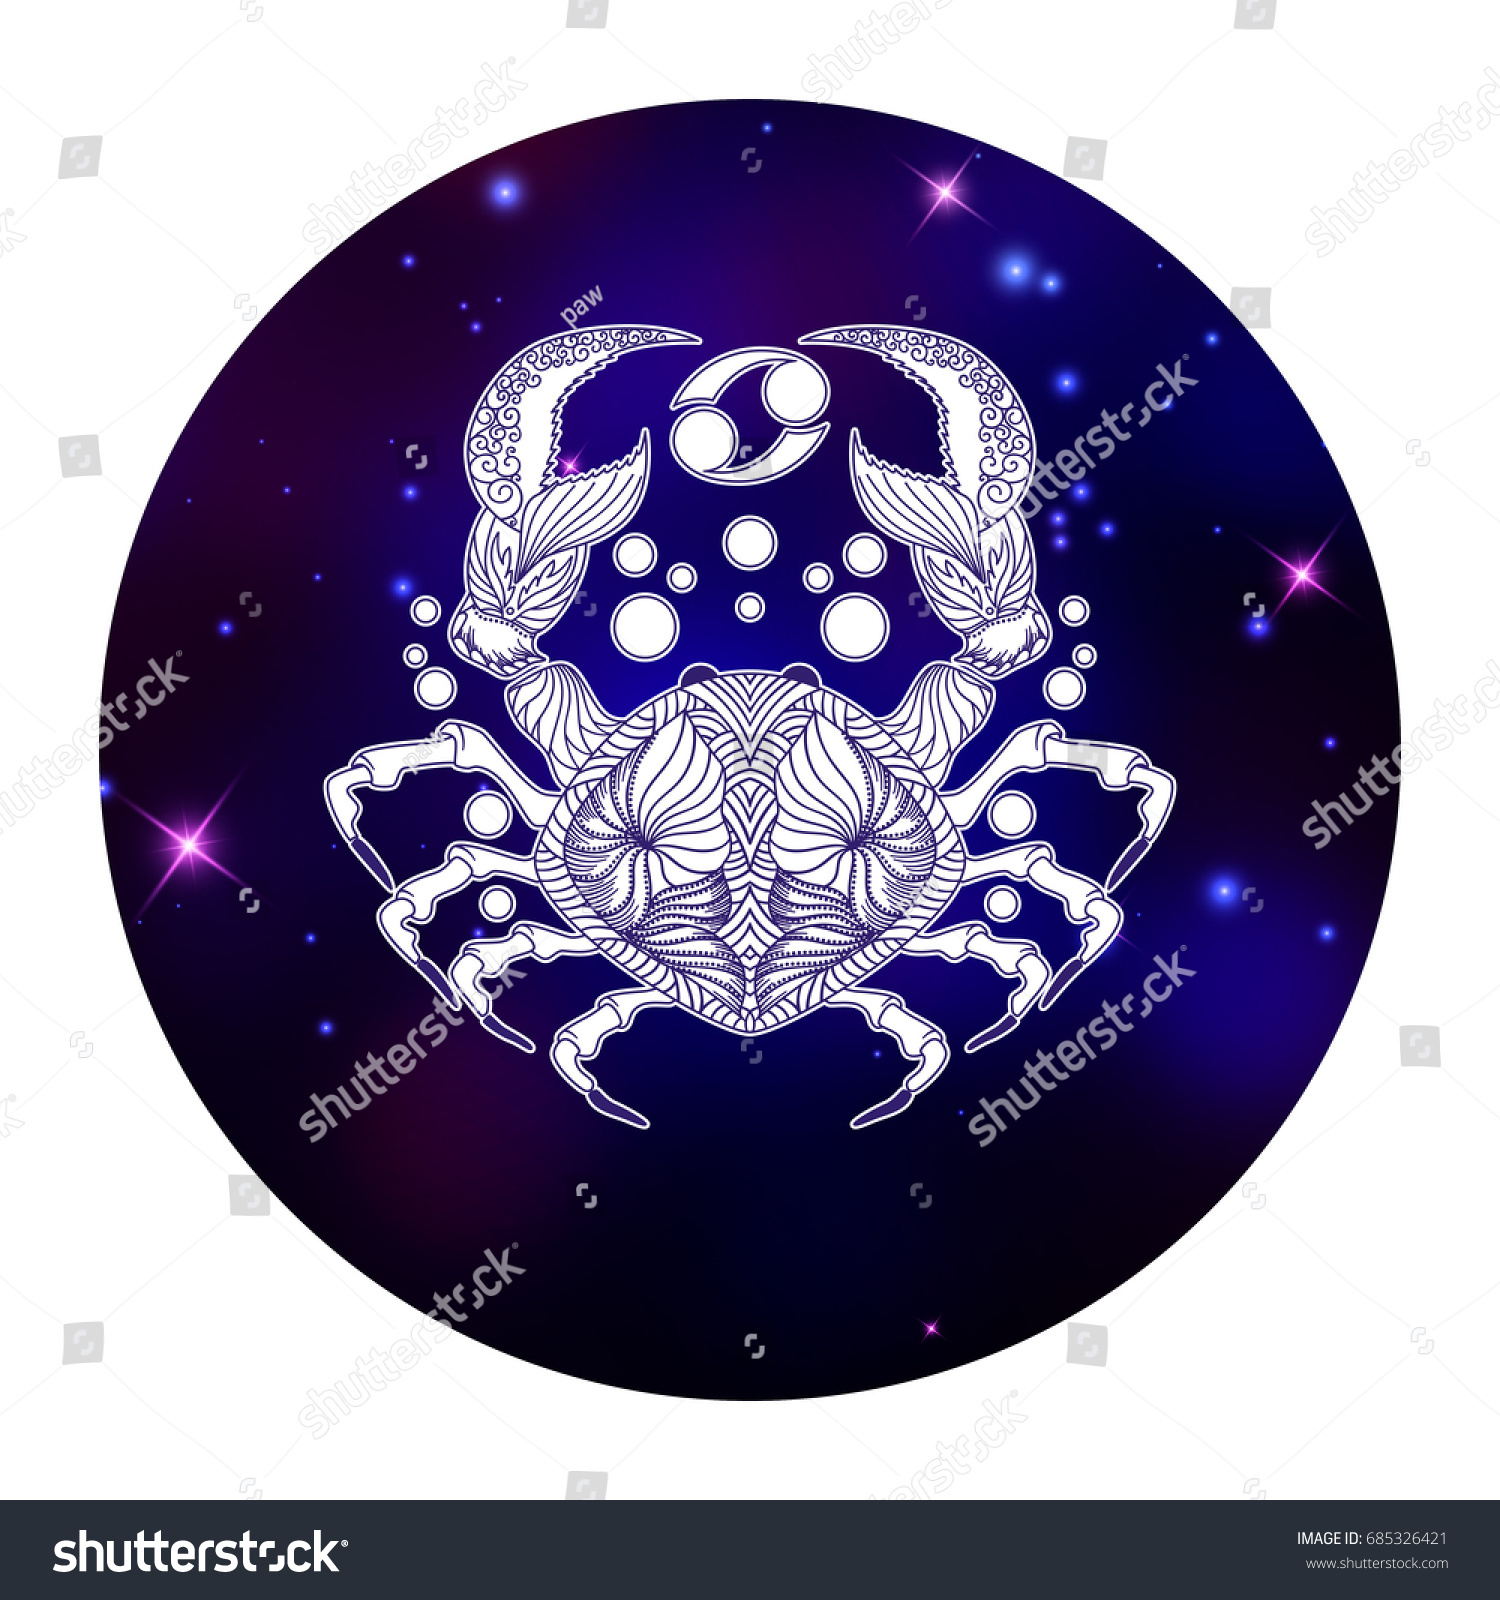 Cancer zodiac sign horoscope symbol vector stock vector 685326421 cancer zodiac sign horoscope symbol vector illustration biocorpaavc Gallery